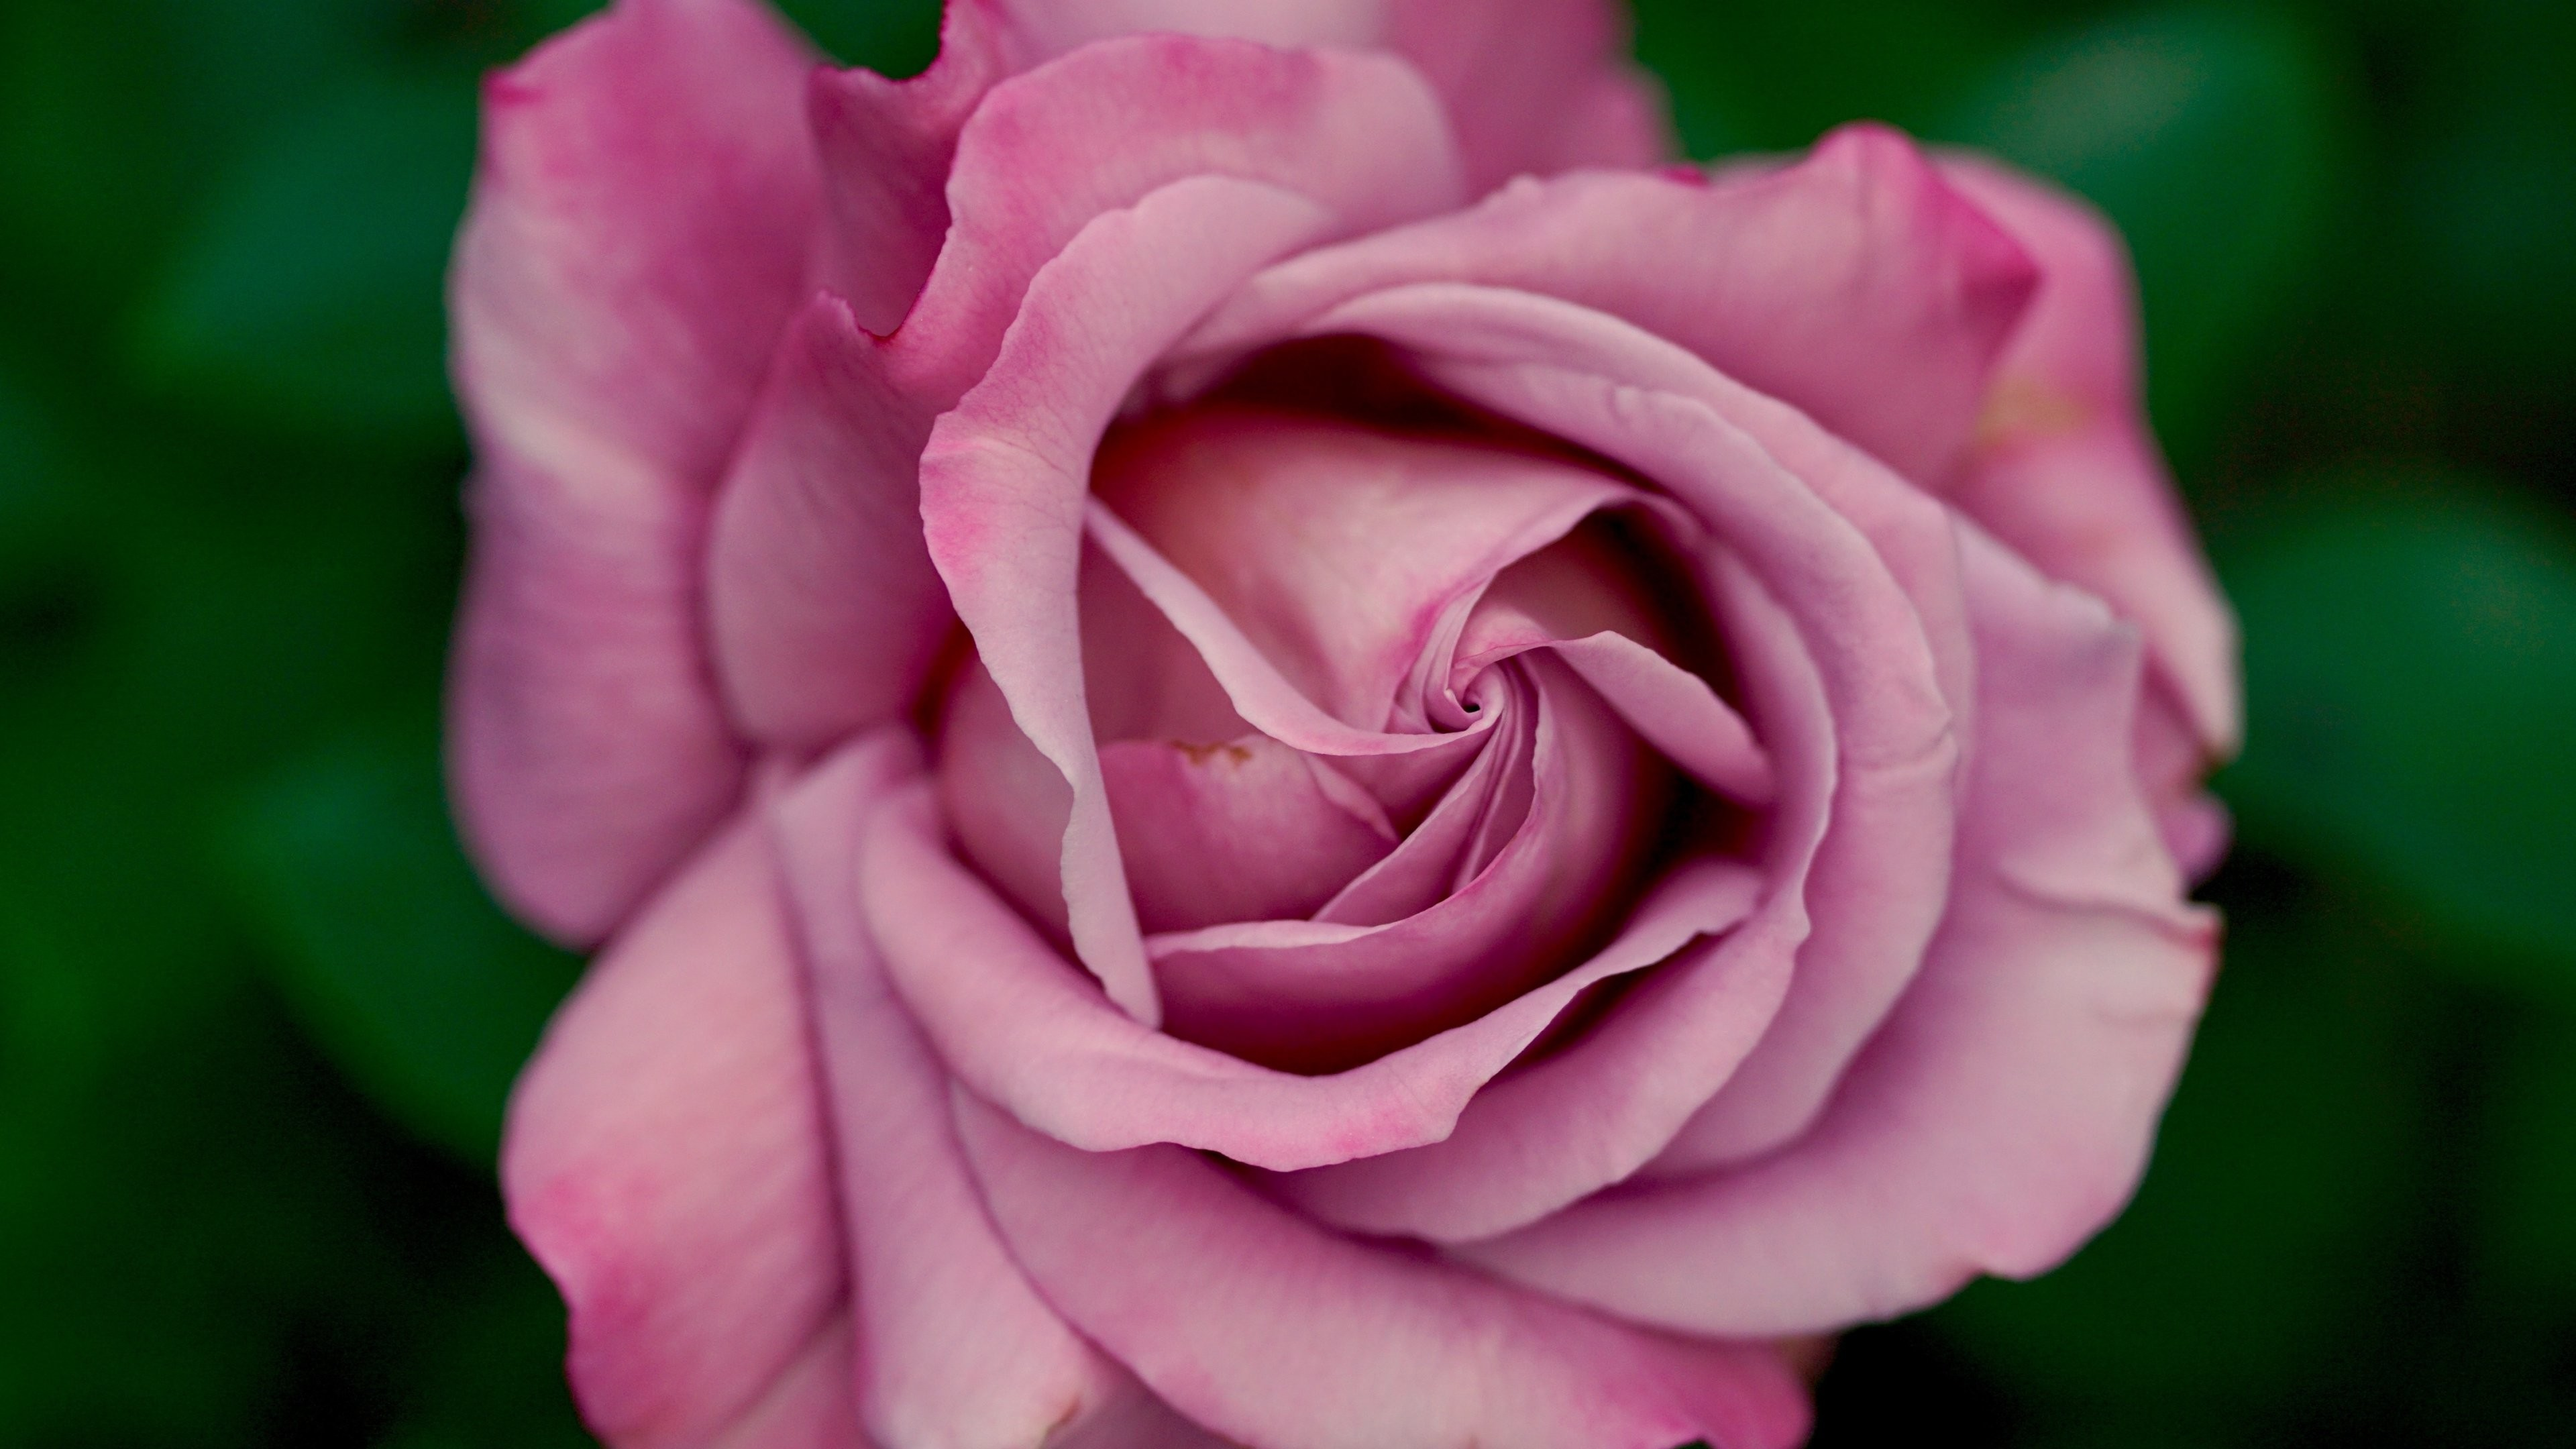 Res: 3840x2160, Dusty Pink Rose